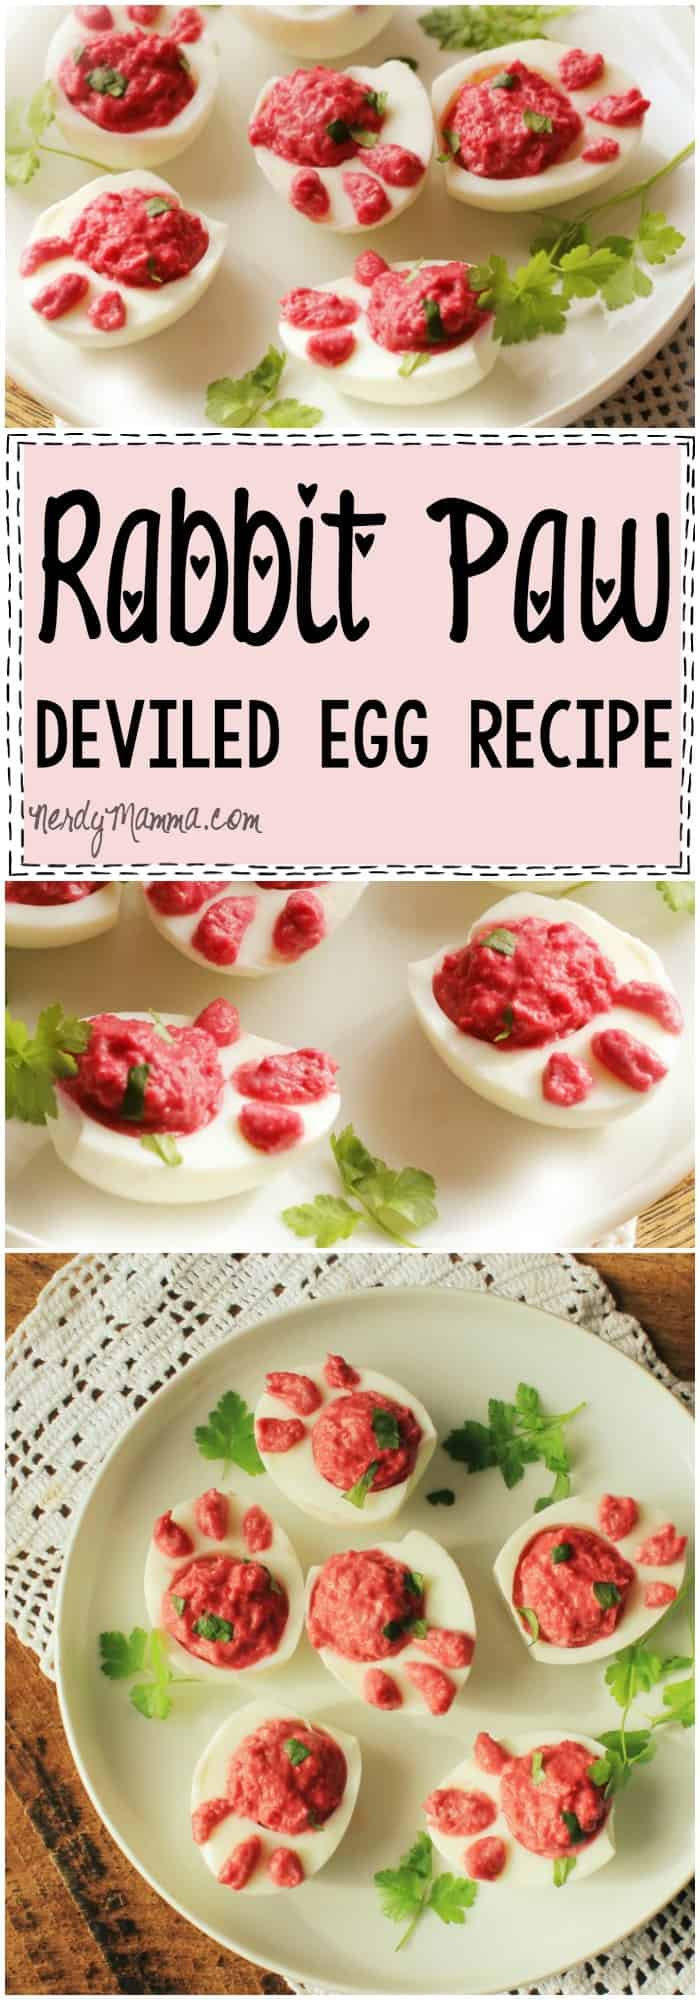 This tutorial for these little rabbit paw deviled eggs--so cute! And easy!